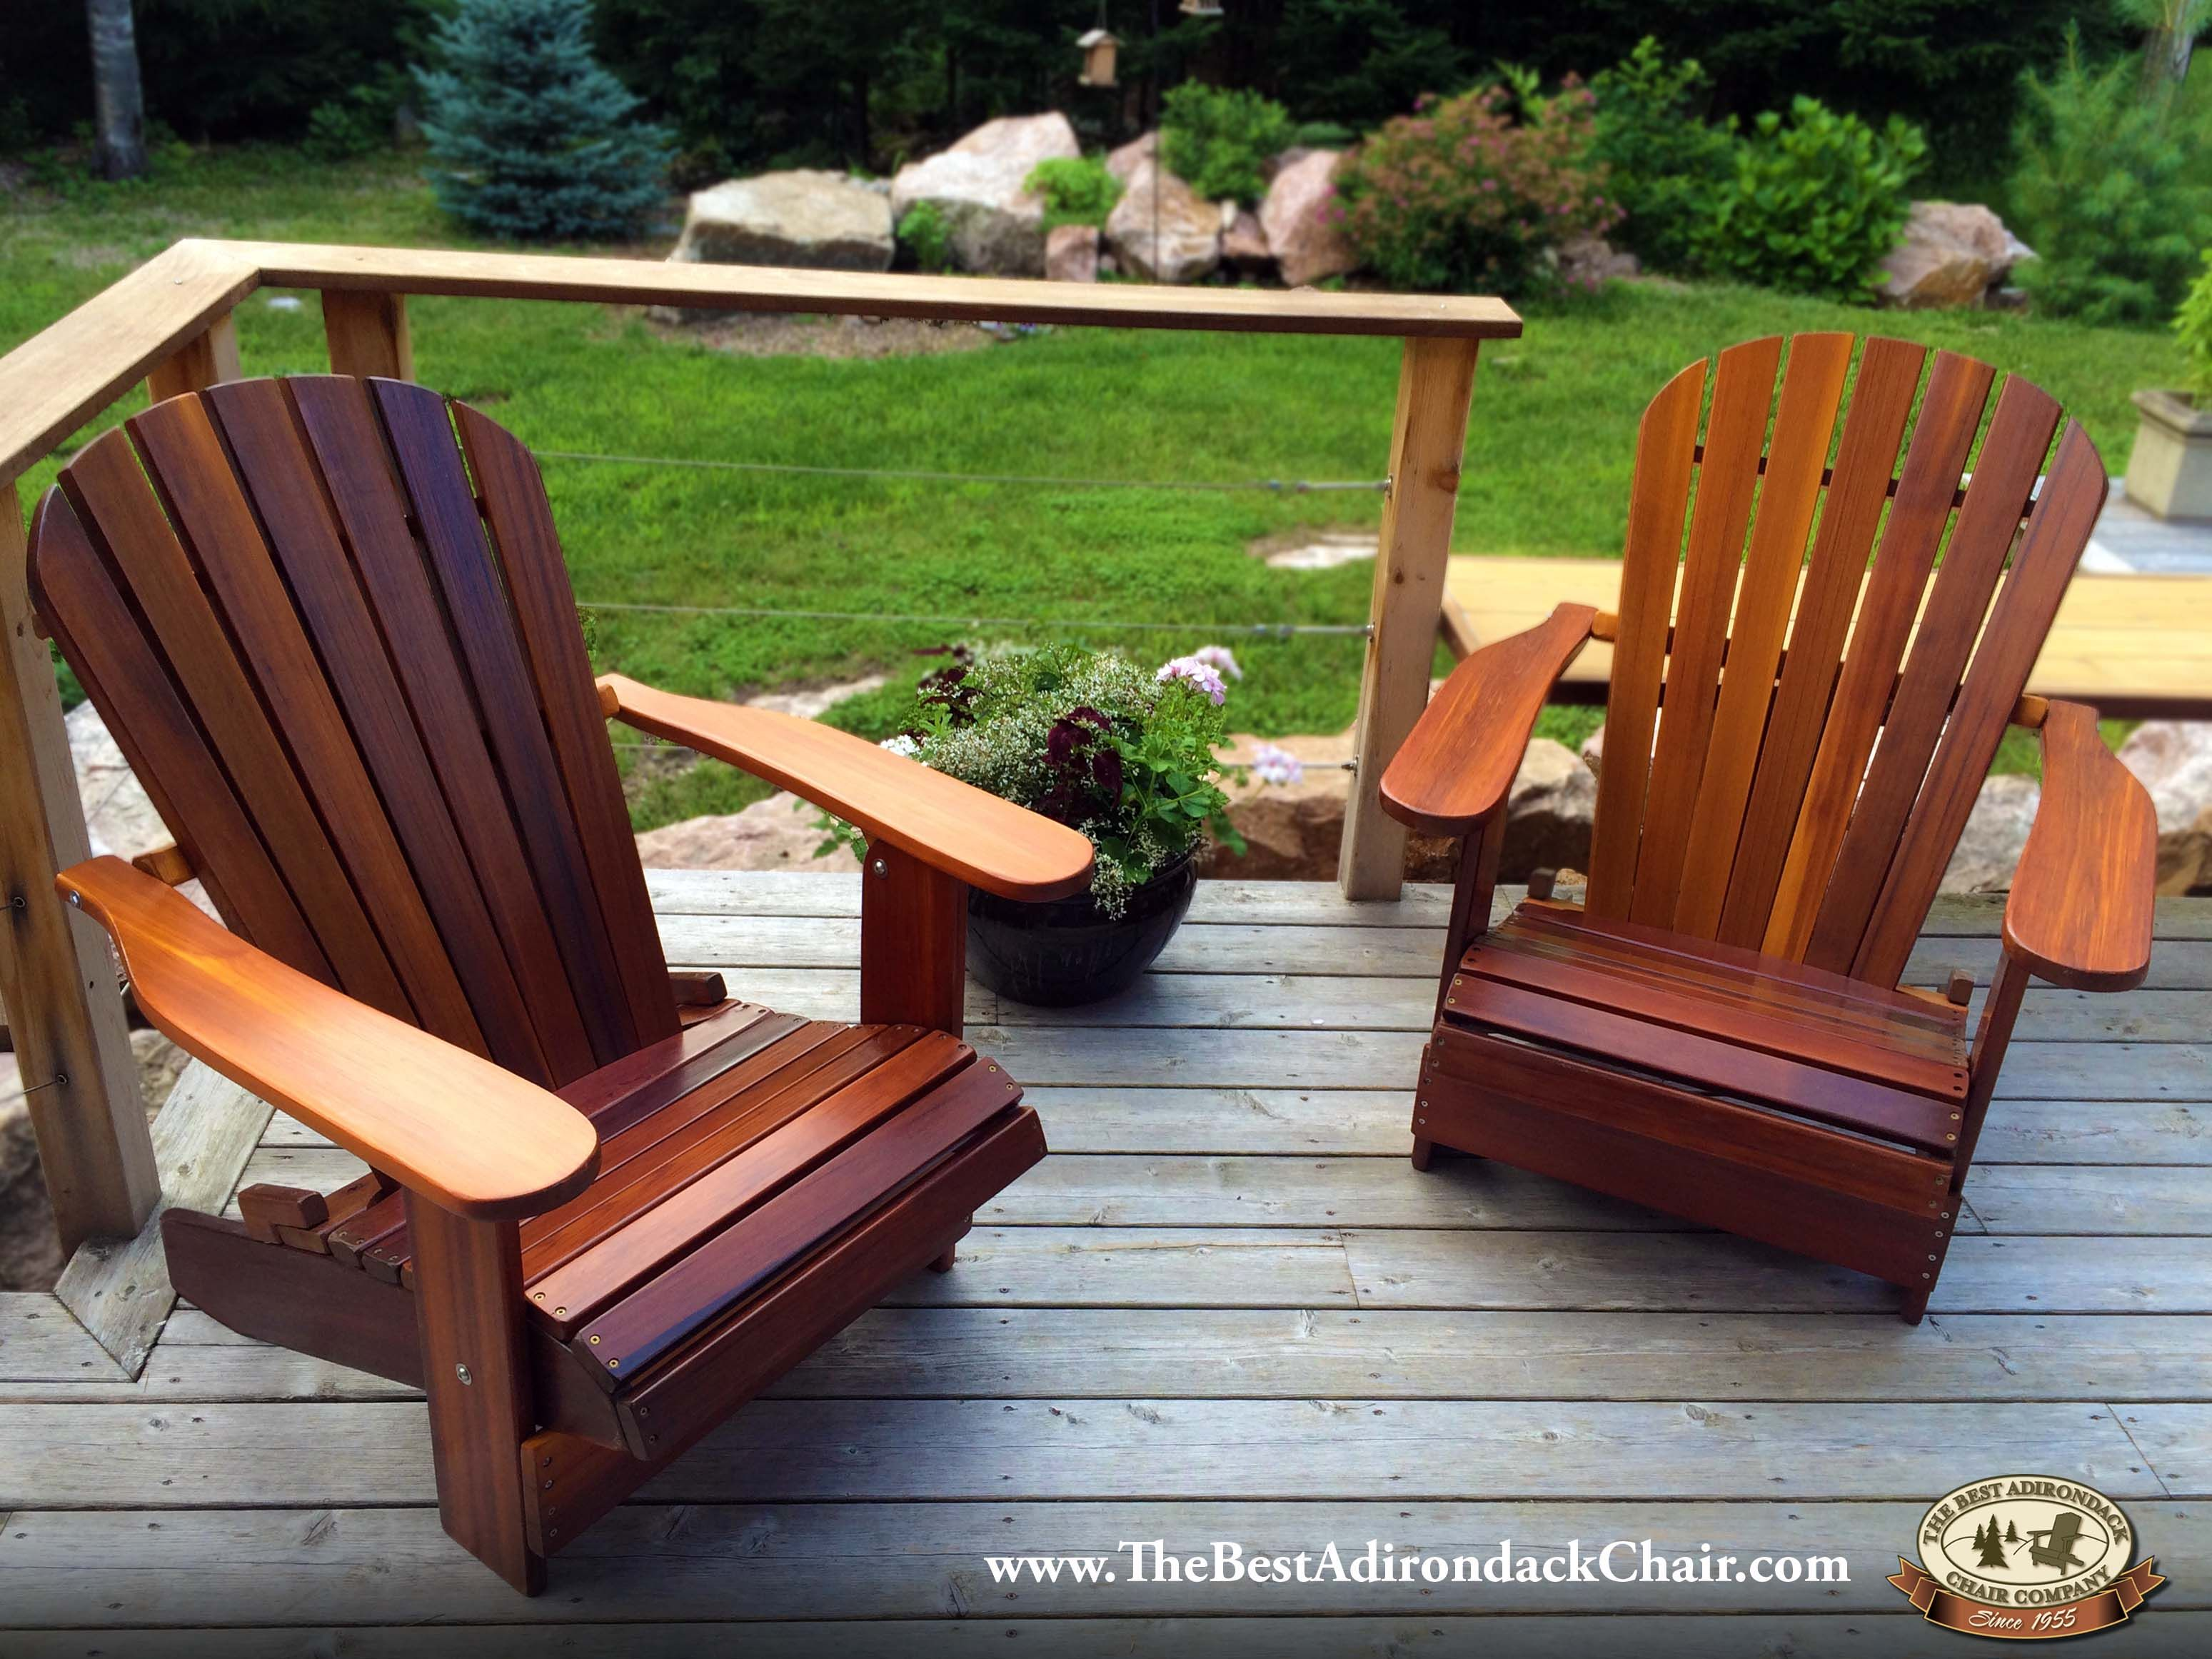 Pair Of Dark Western Red Cedar Adirondack Chairs Stained With Cetol 1 By  Sikkens On Deck. Picture From Customer In Dunrobin Ontario